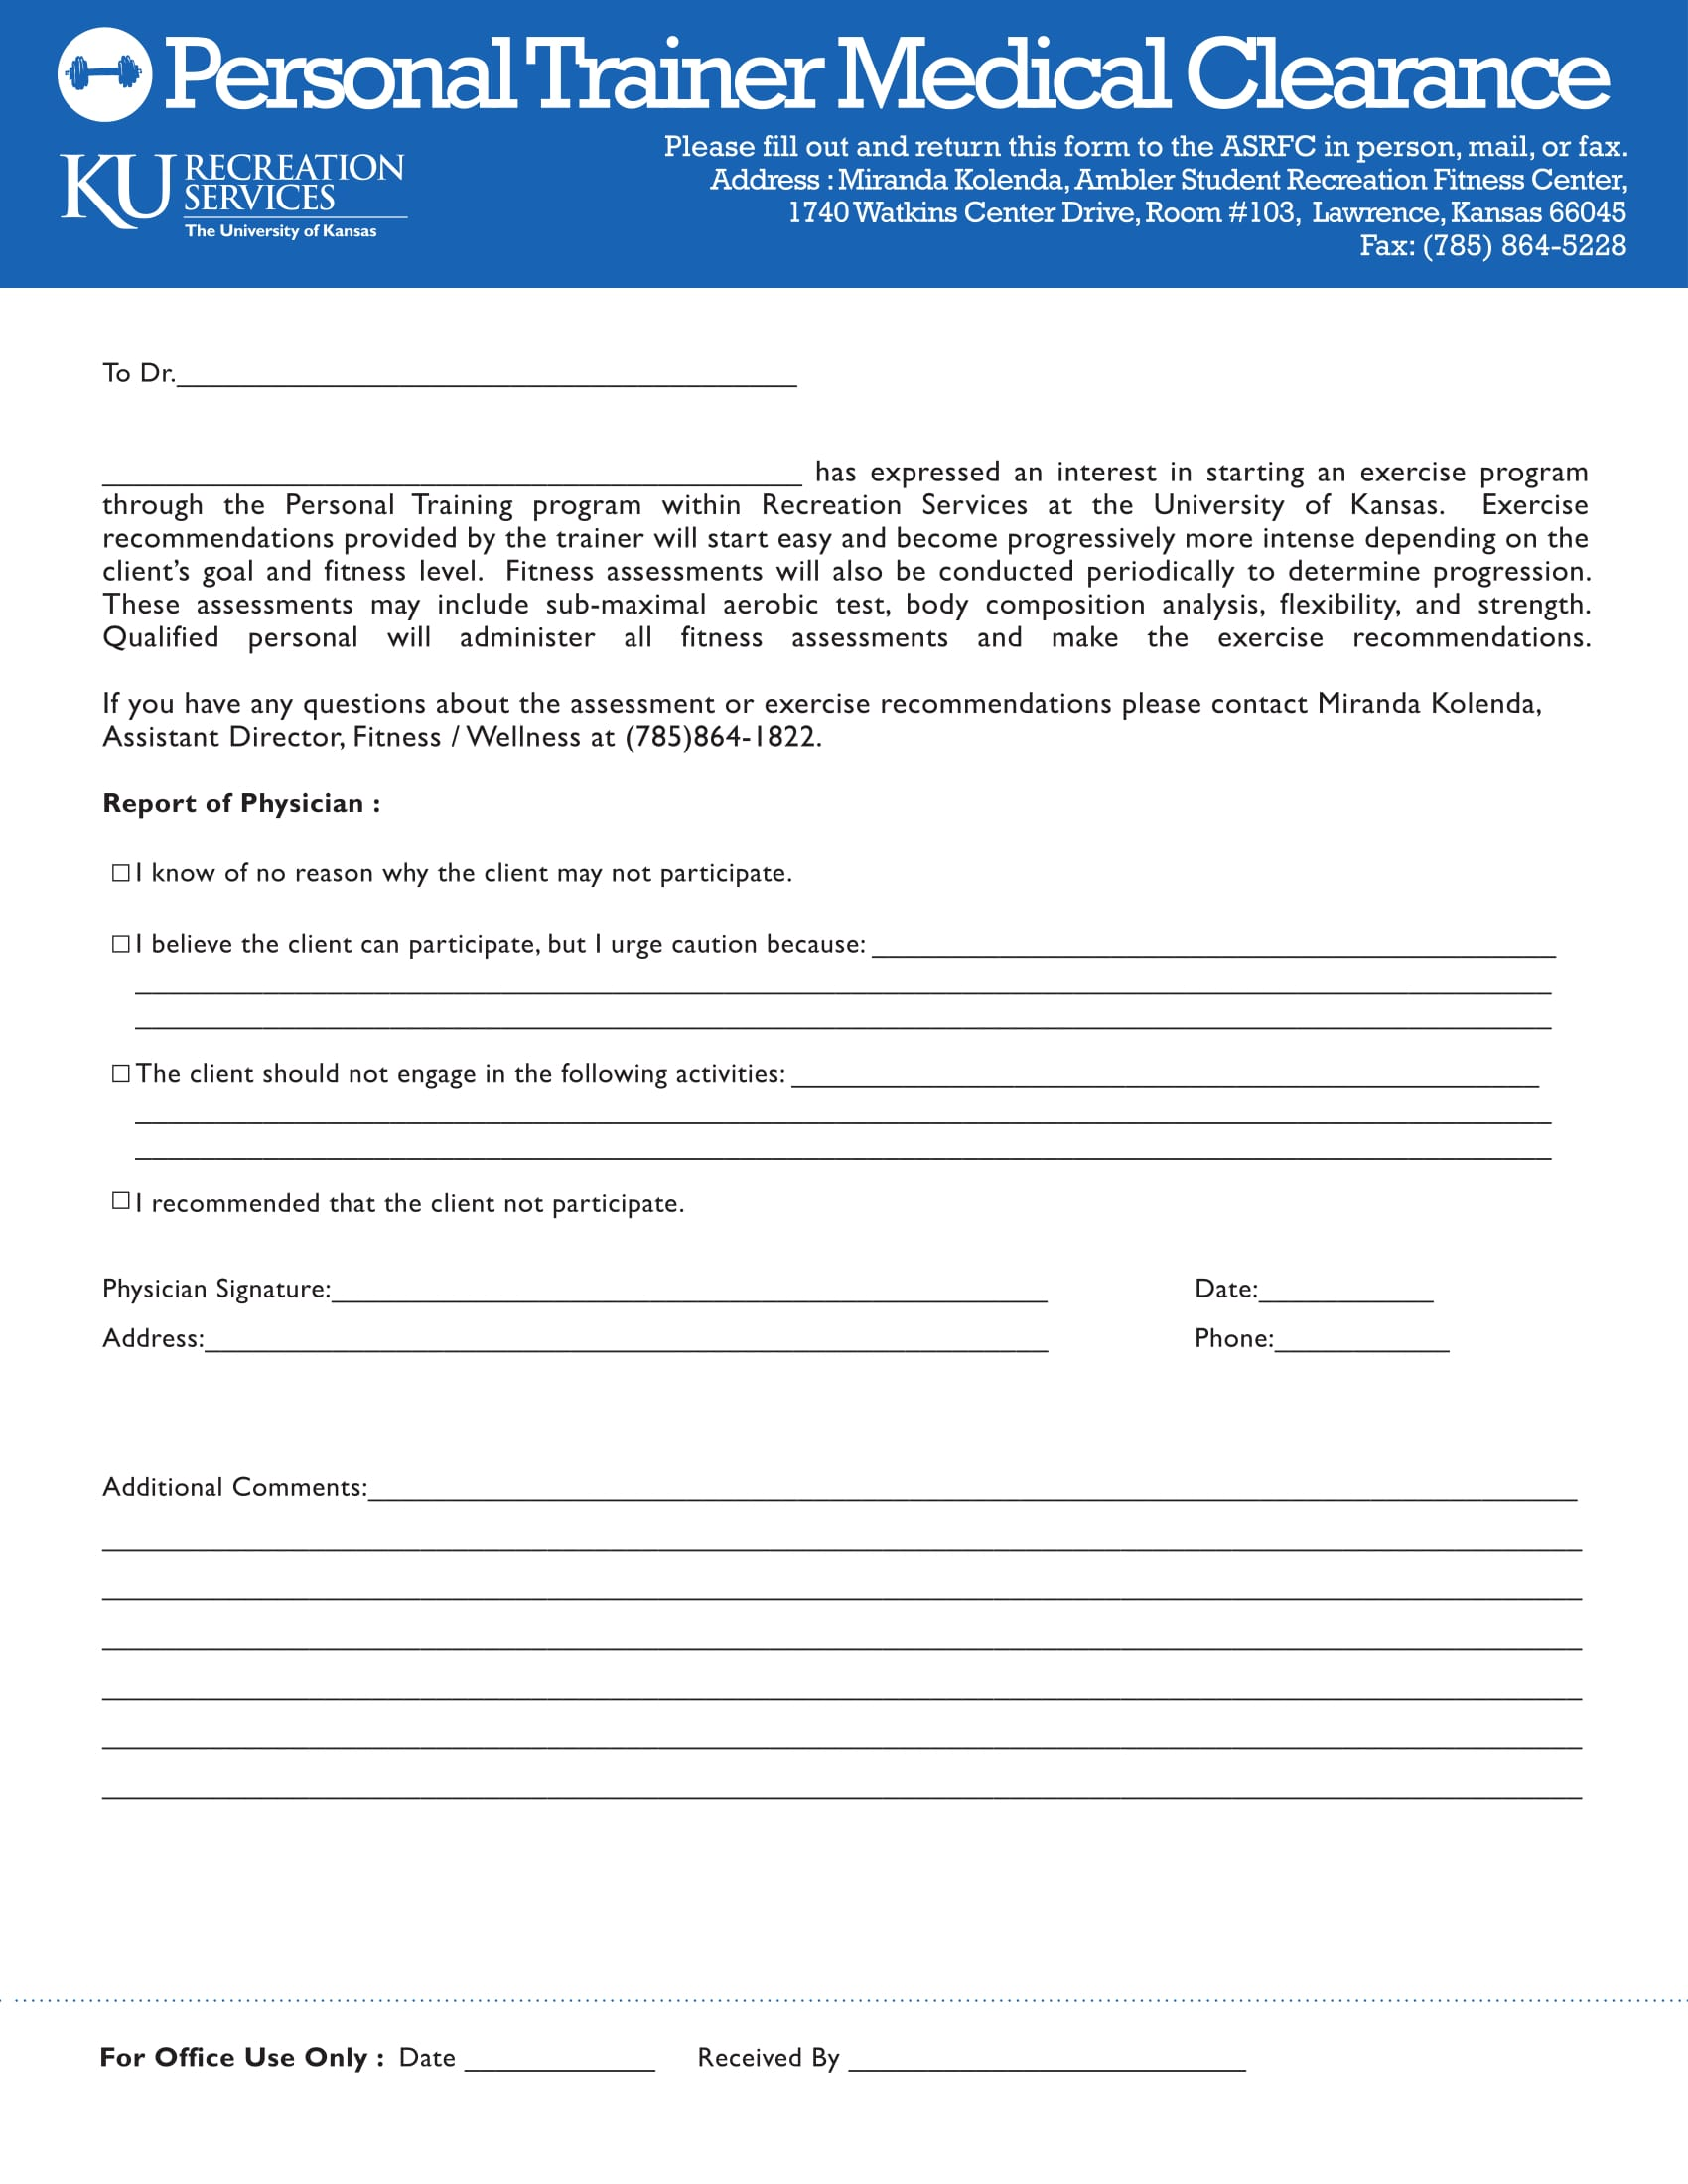 personal trainer medical clearance form 1